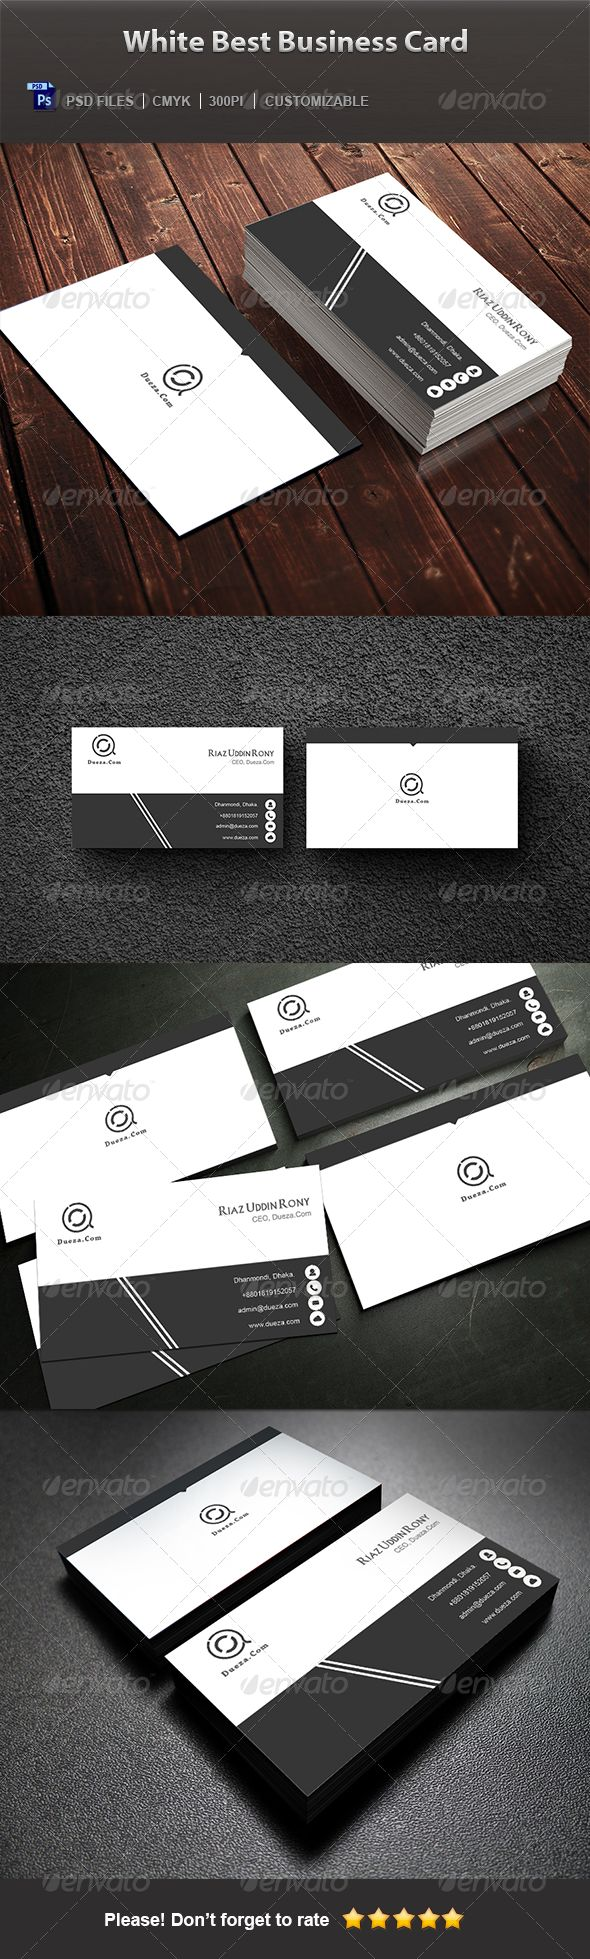 51 best blog for modern creative business card design images on white best business card magicingreecefo Gallery